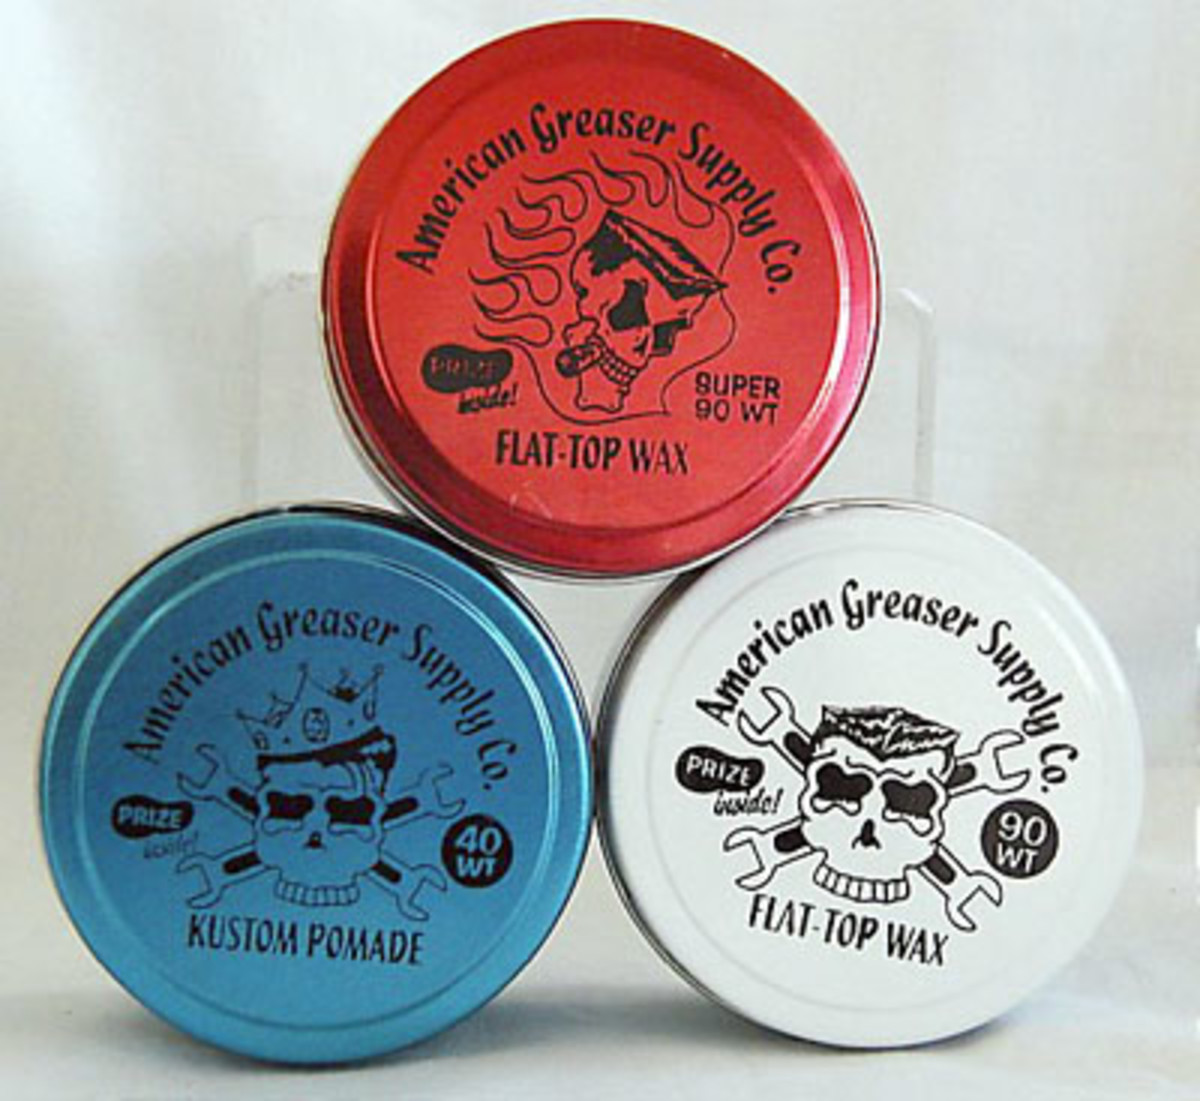 American Greaser pomade at 8ballwebstore.com for only $7.50.